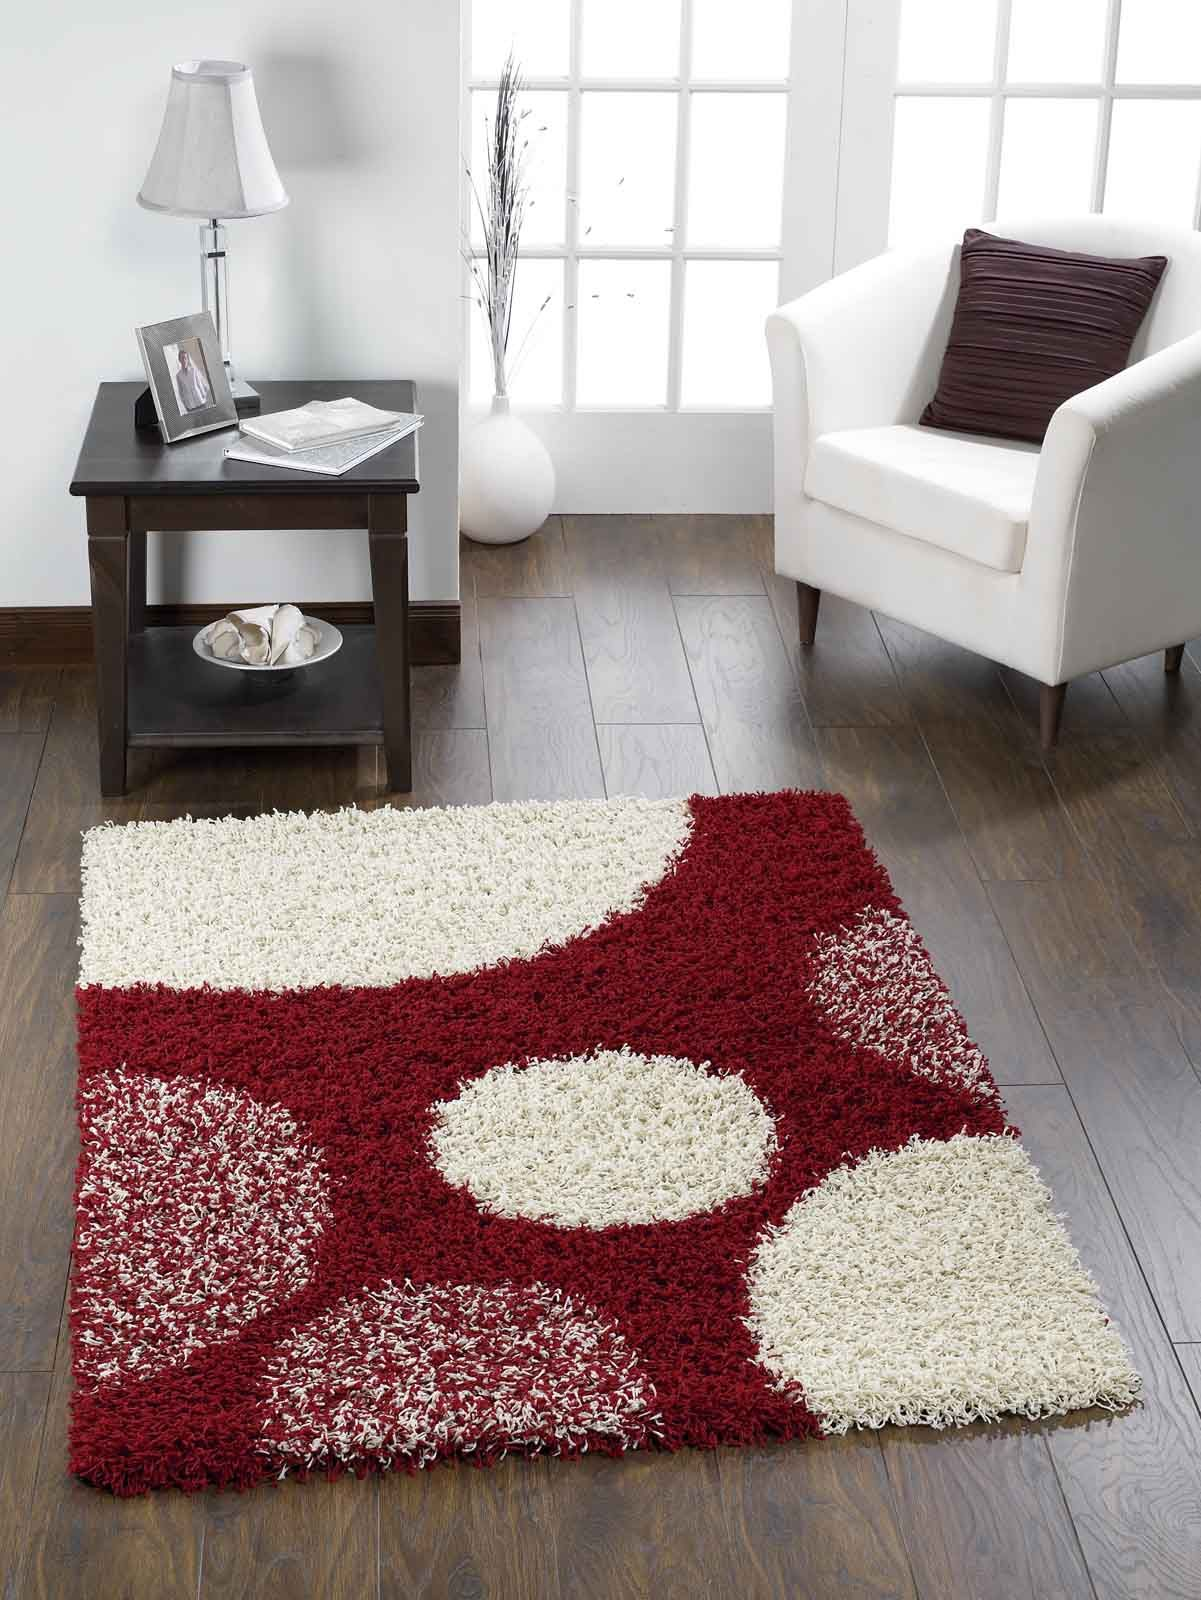 One Of Our Beautiful Shaggy Rugs Pluto Red Shaggy Rug Has A